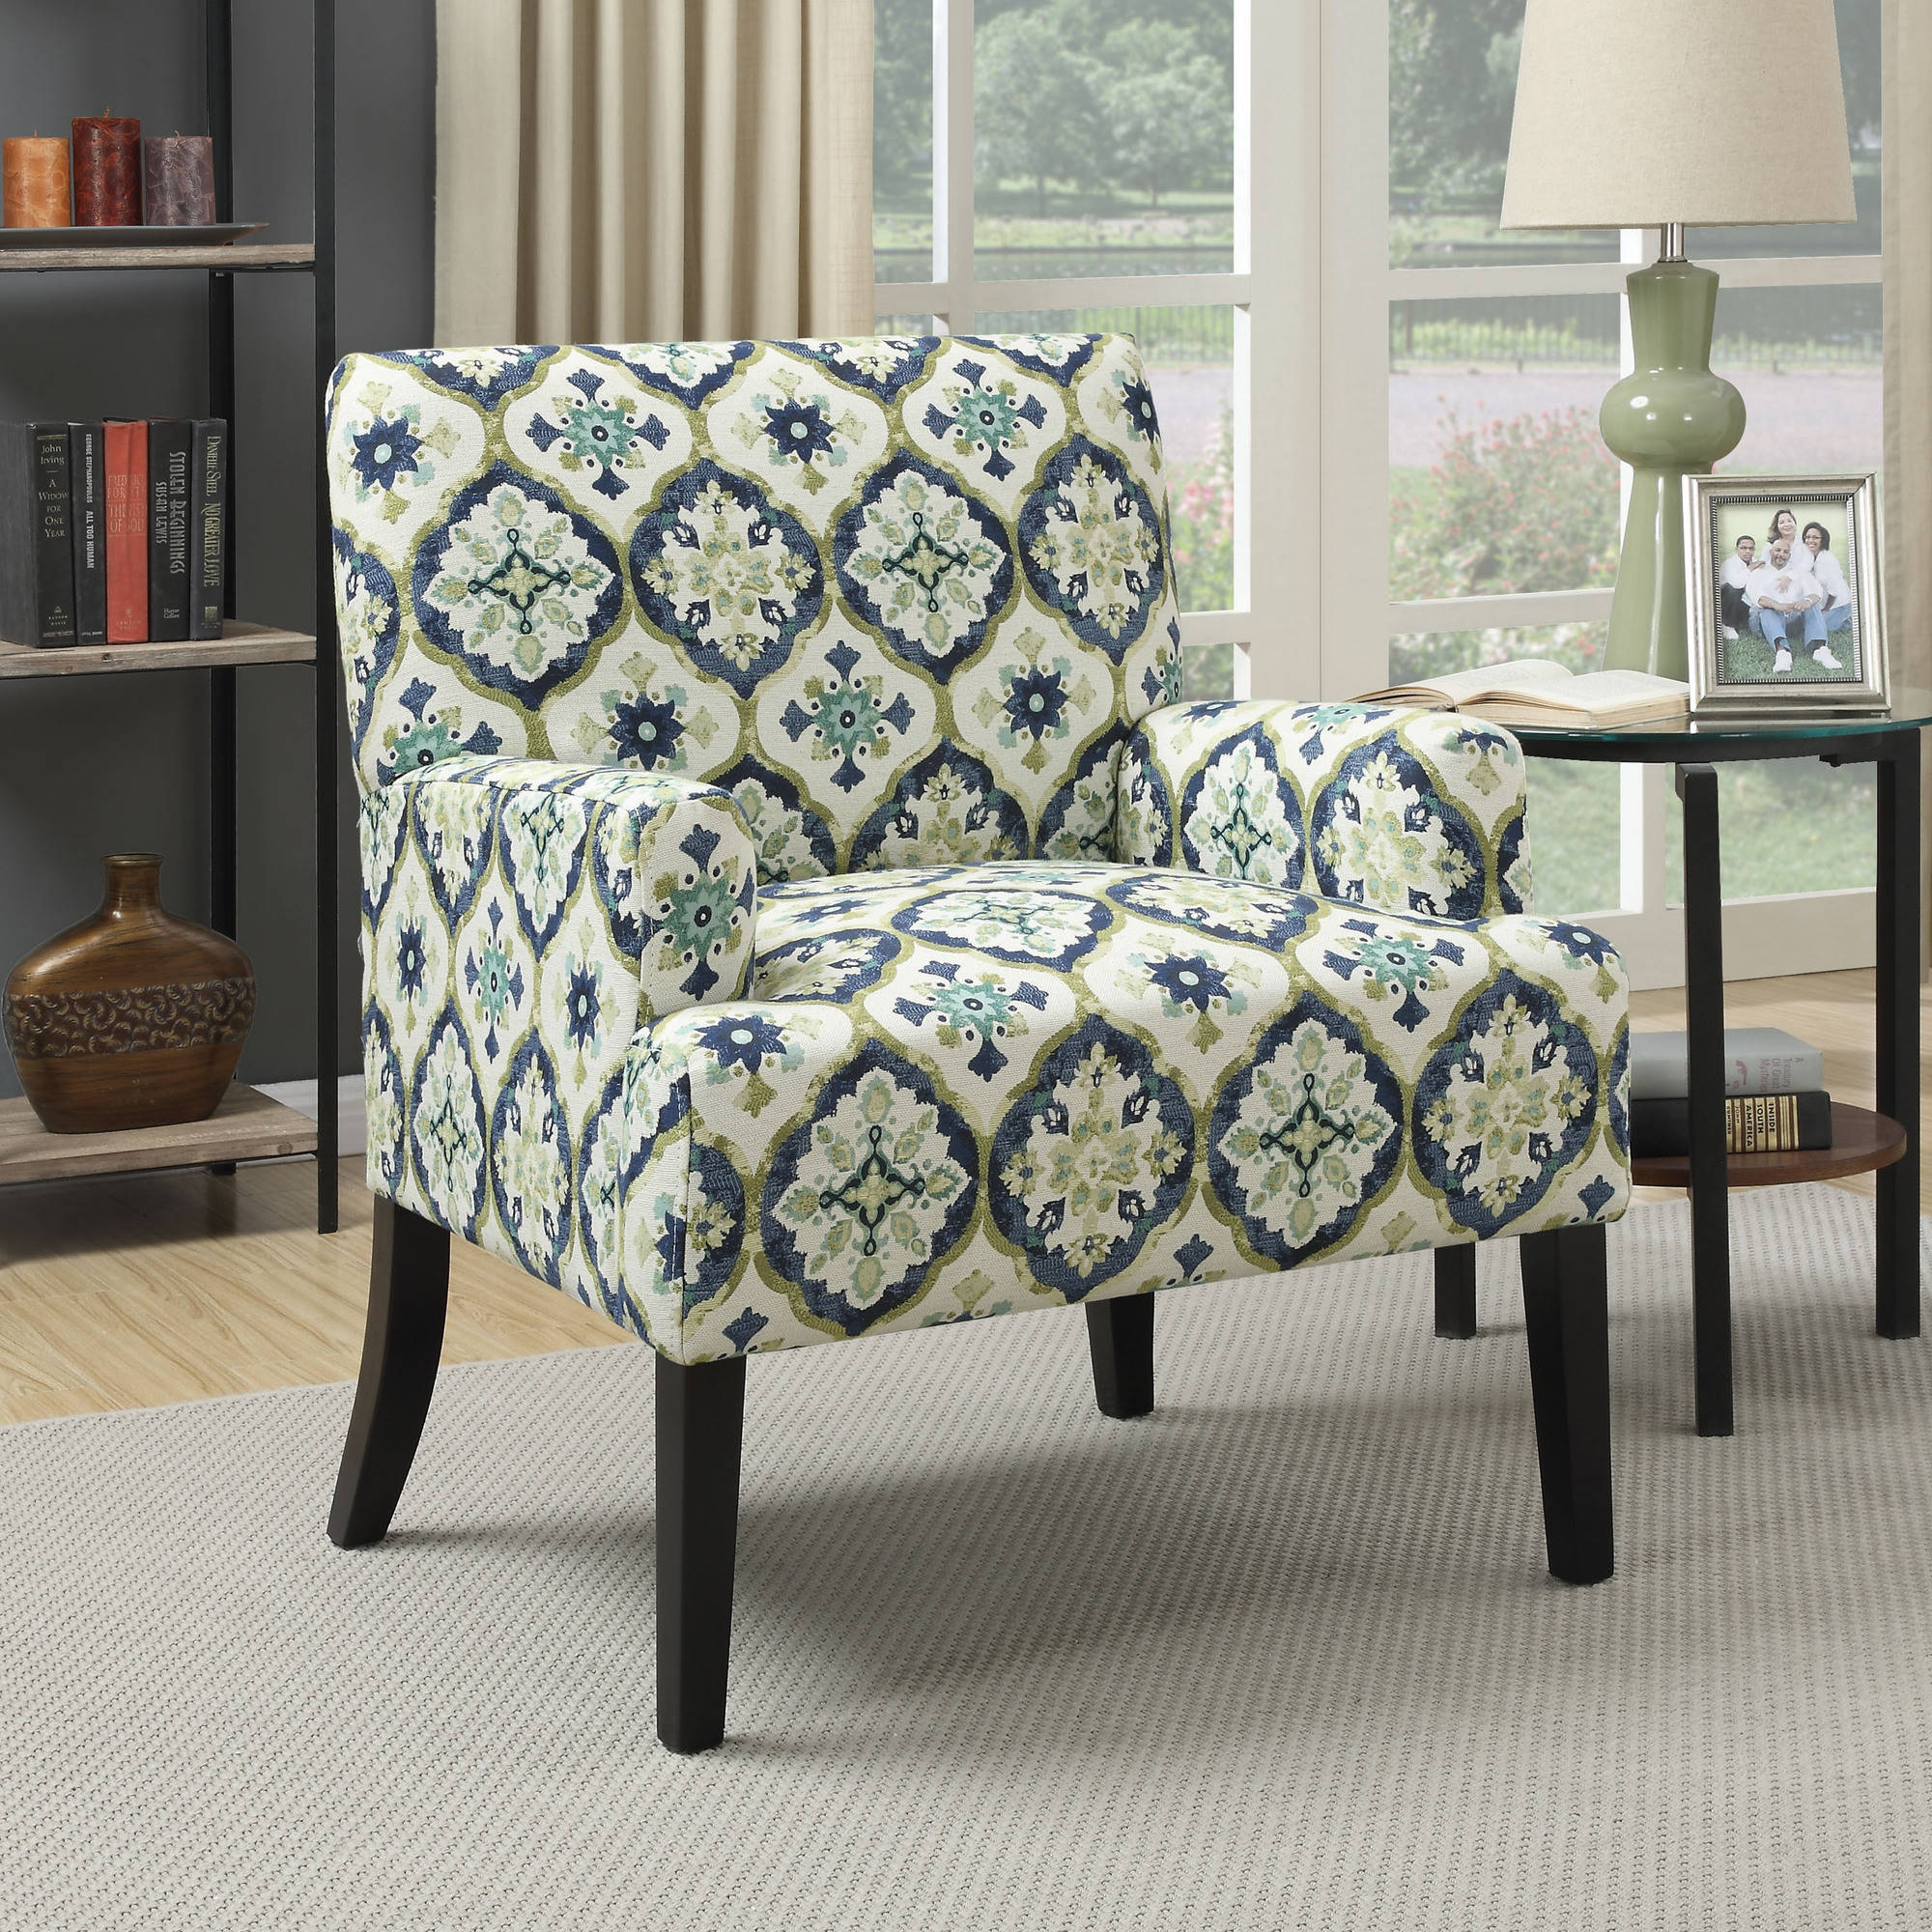 Coaster Kaleidoscope Pattern Accent Chair With Blue And Green Design